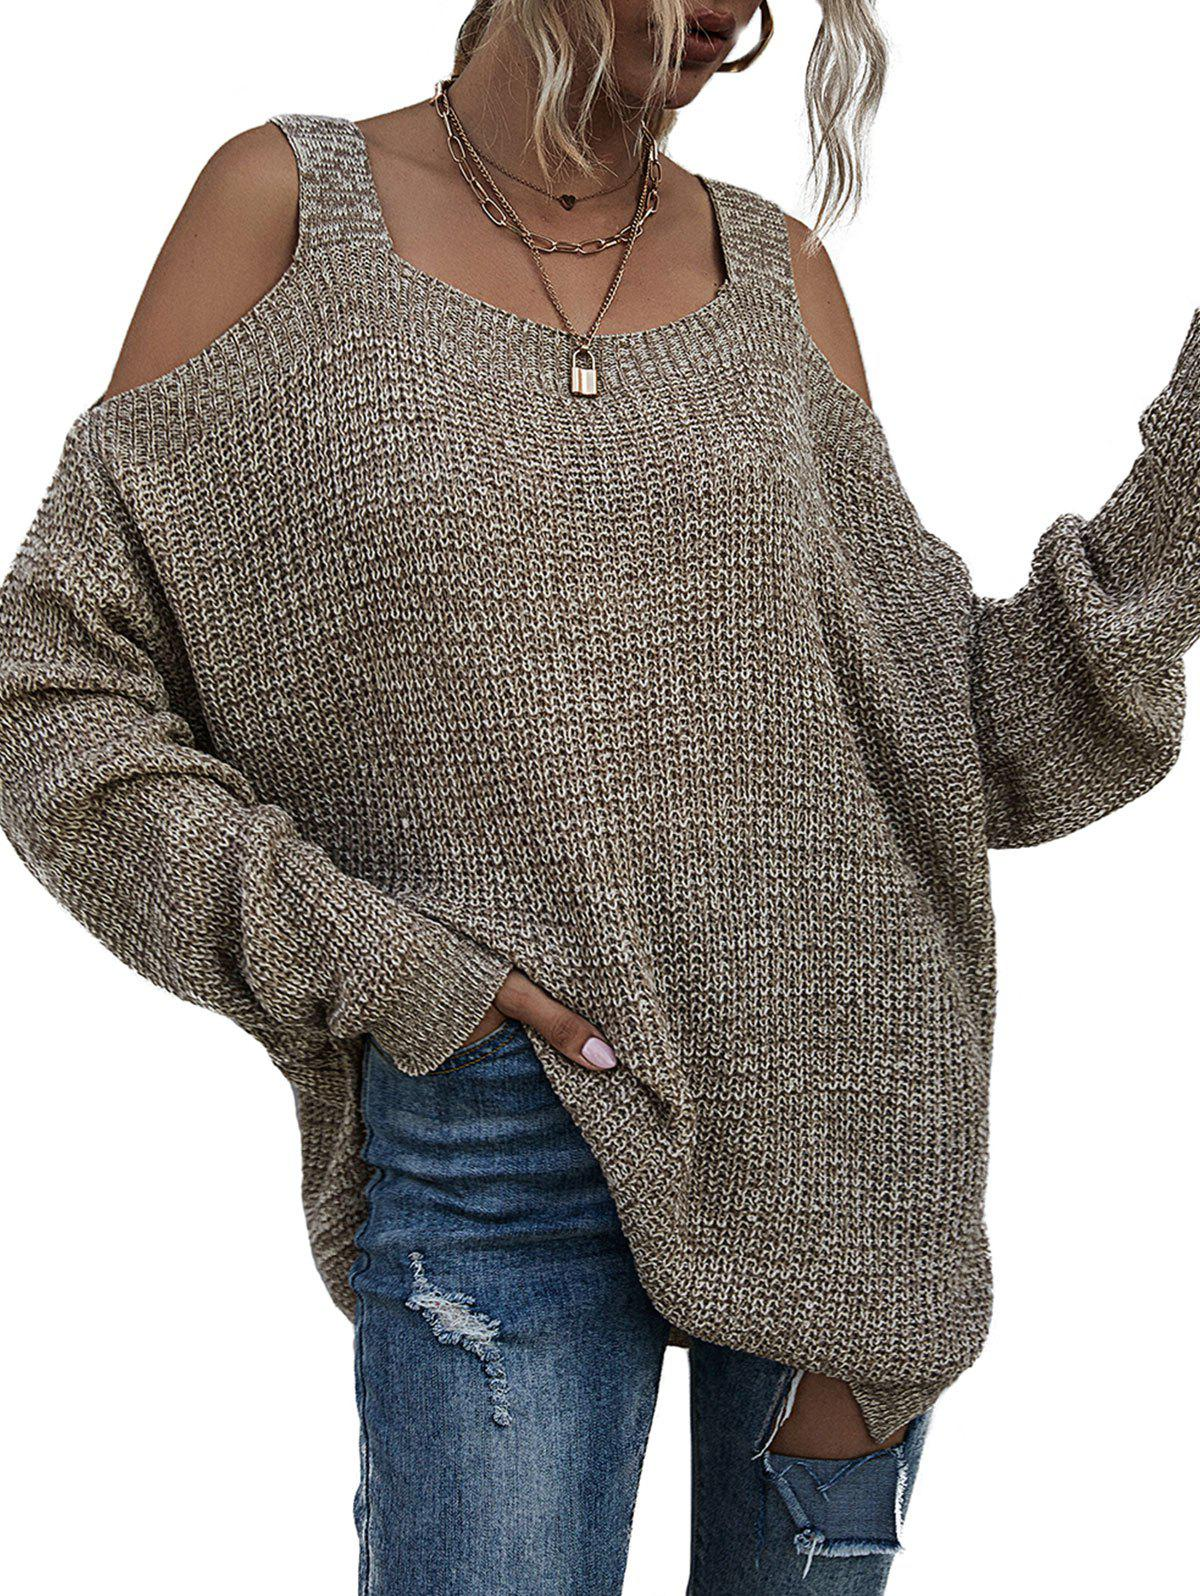 Cold Shoulder Space Dye Tunic Sweater - LIGHT COFFEE S